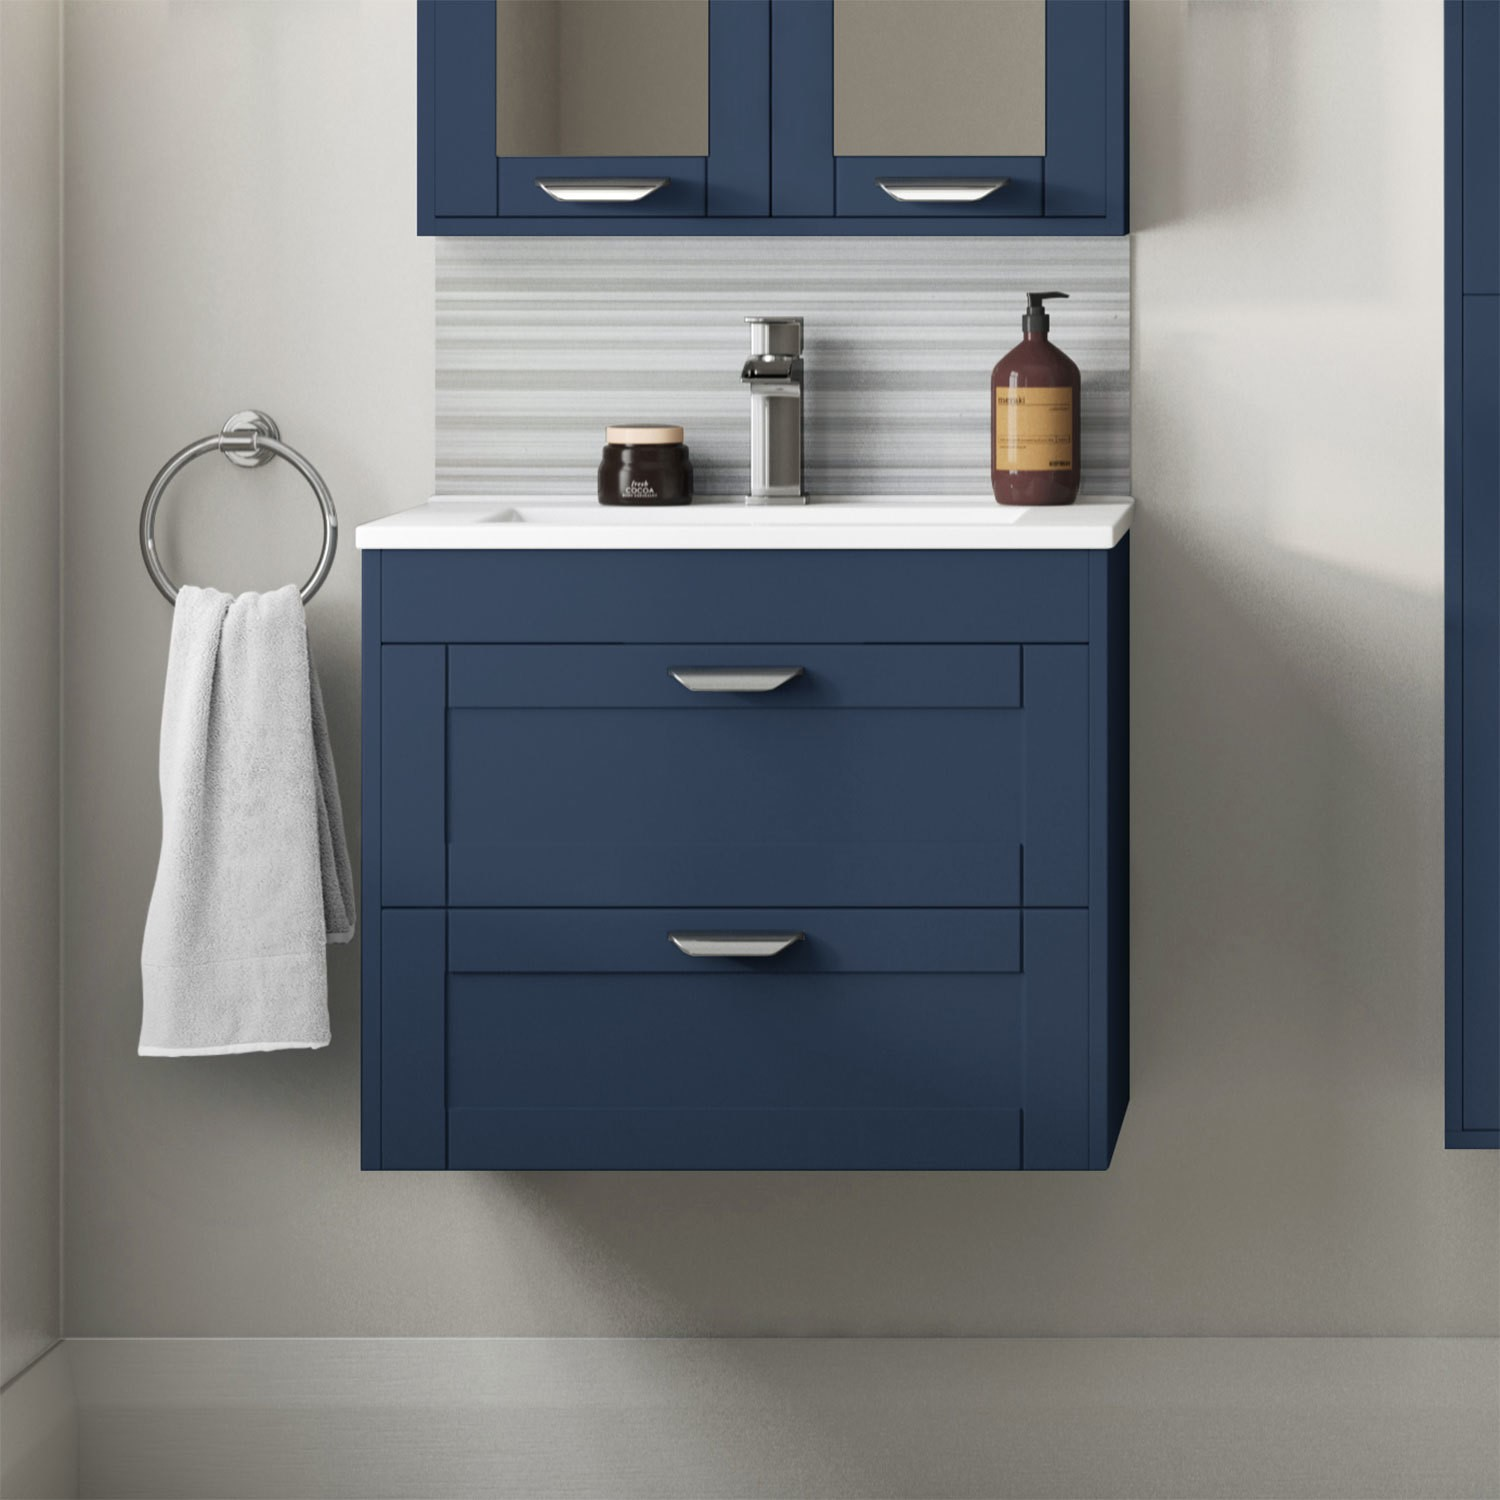 600mm Wall Hung 2 Drawer Vanity Unit With Basin Indigo Blue Nottingham Furniture123